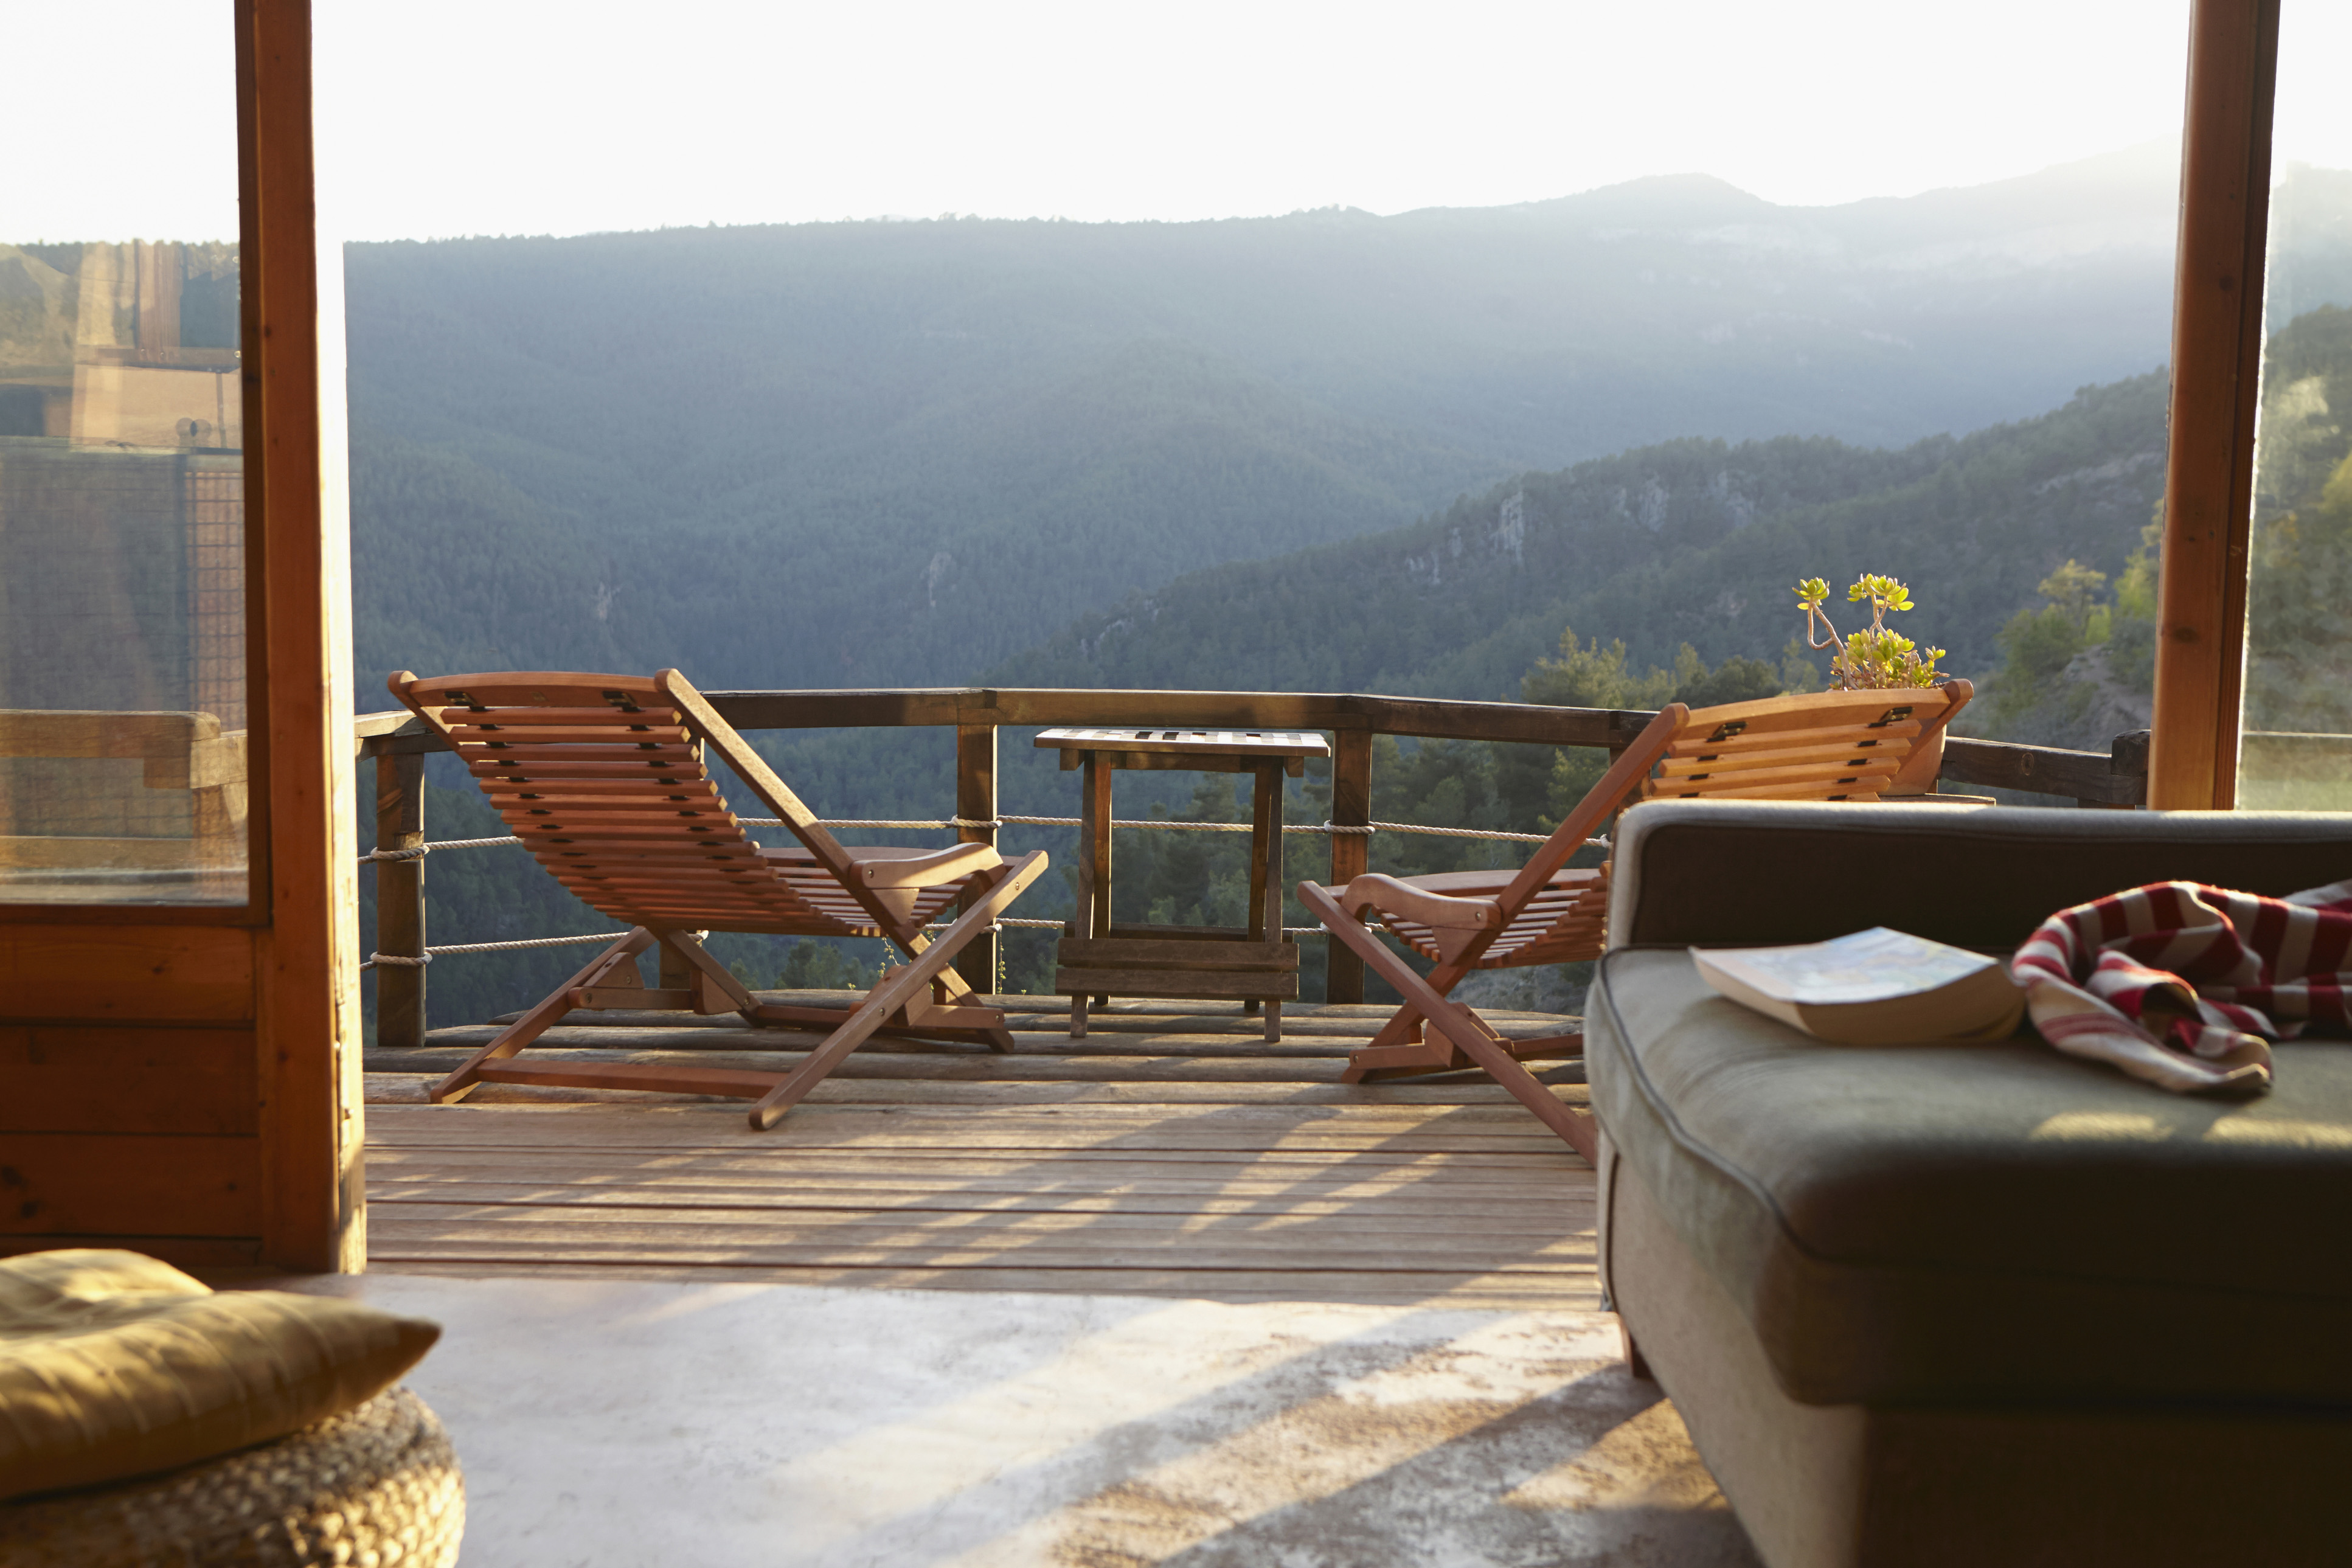 The Pros and Cons of Investing in a Vacation Home